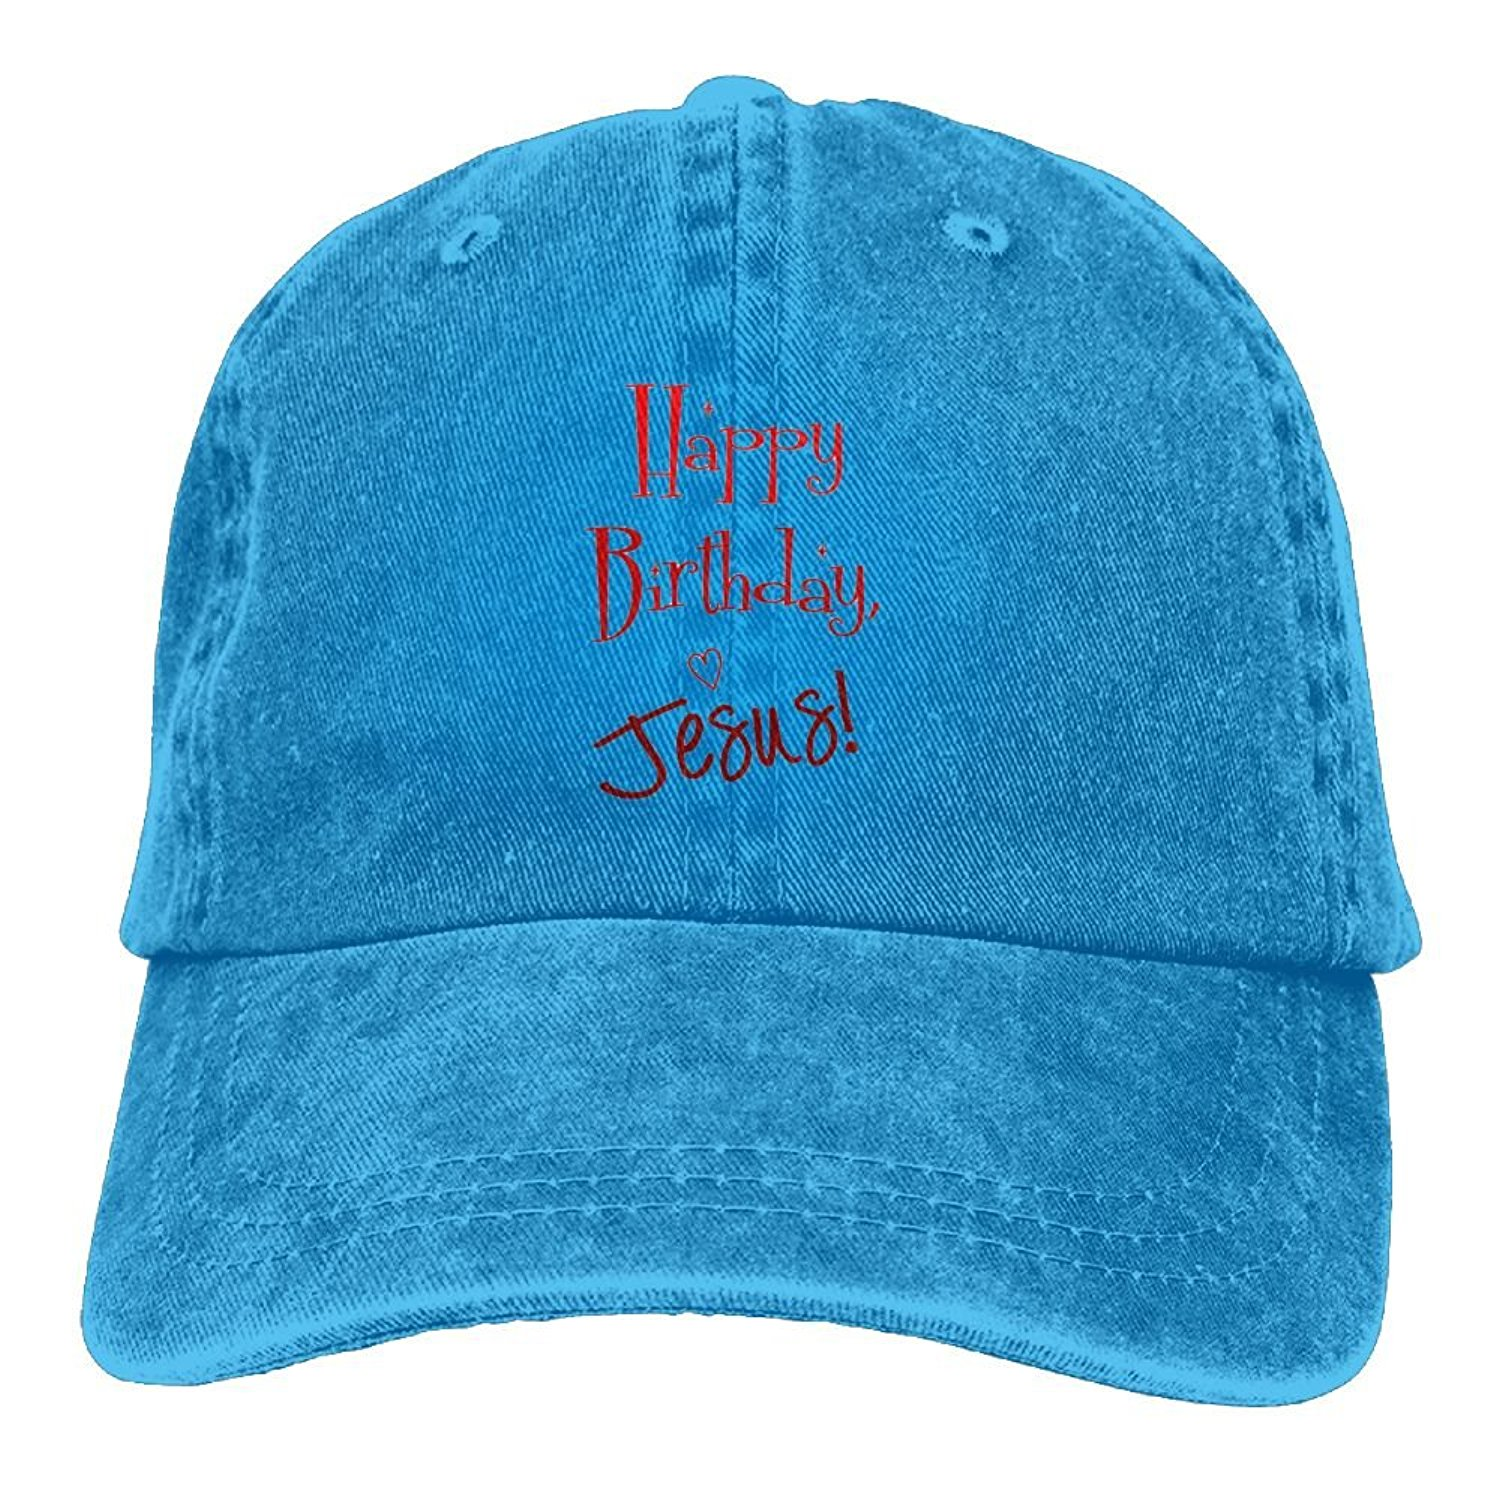 584ee9ceaa2 Get Quotations · FBGVFD Happy Birthday Jesus Baseball Caps Retro Top  Quality Snapback Hats For College Students